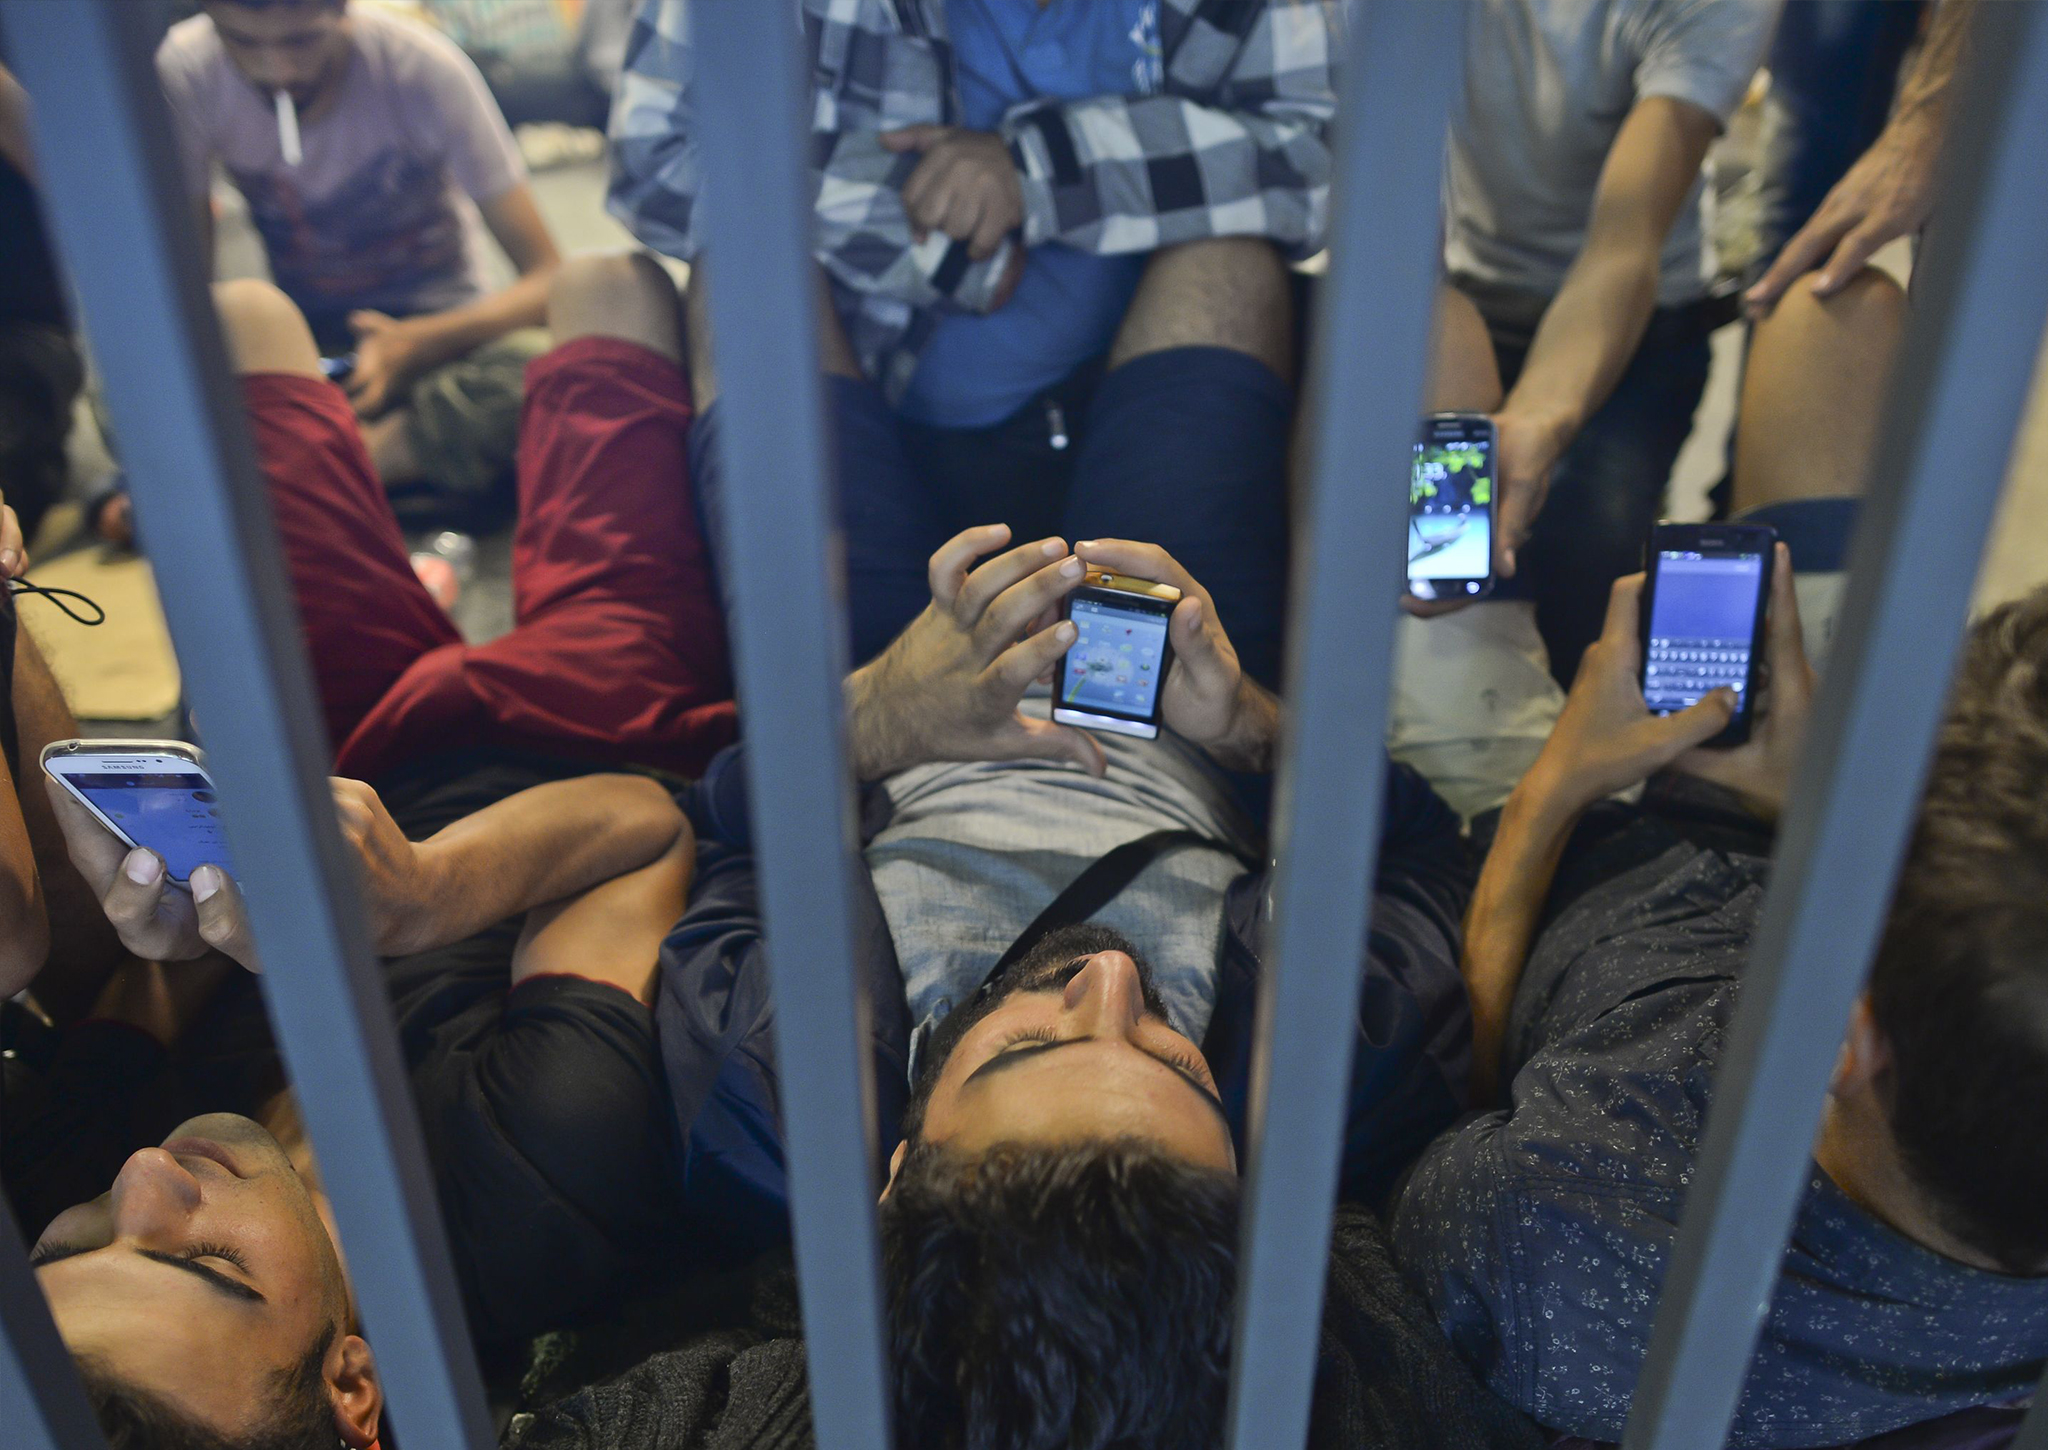 Why mobile phones are as important as food and shelter to the refugee crisis